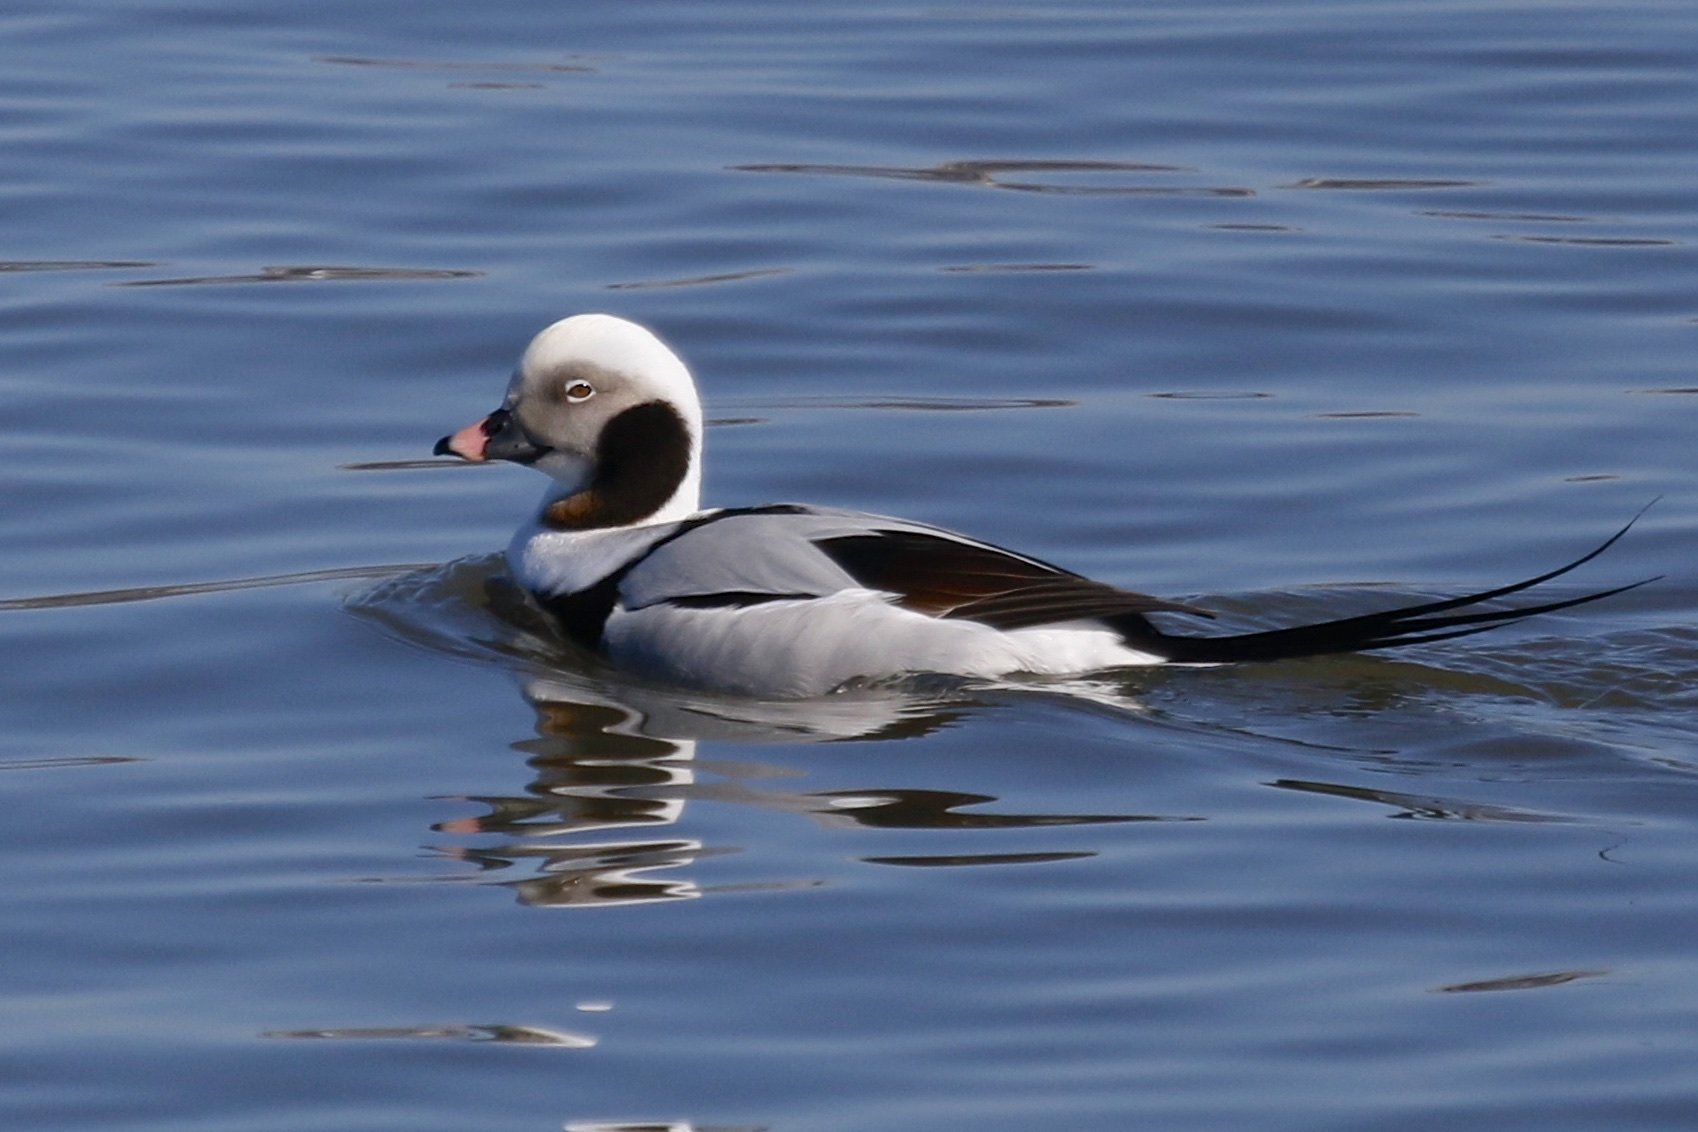 ~Another one of my favorites! Long-tailed Duck at Piermont Pier Rockland County NY, 2/28/15.~